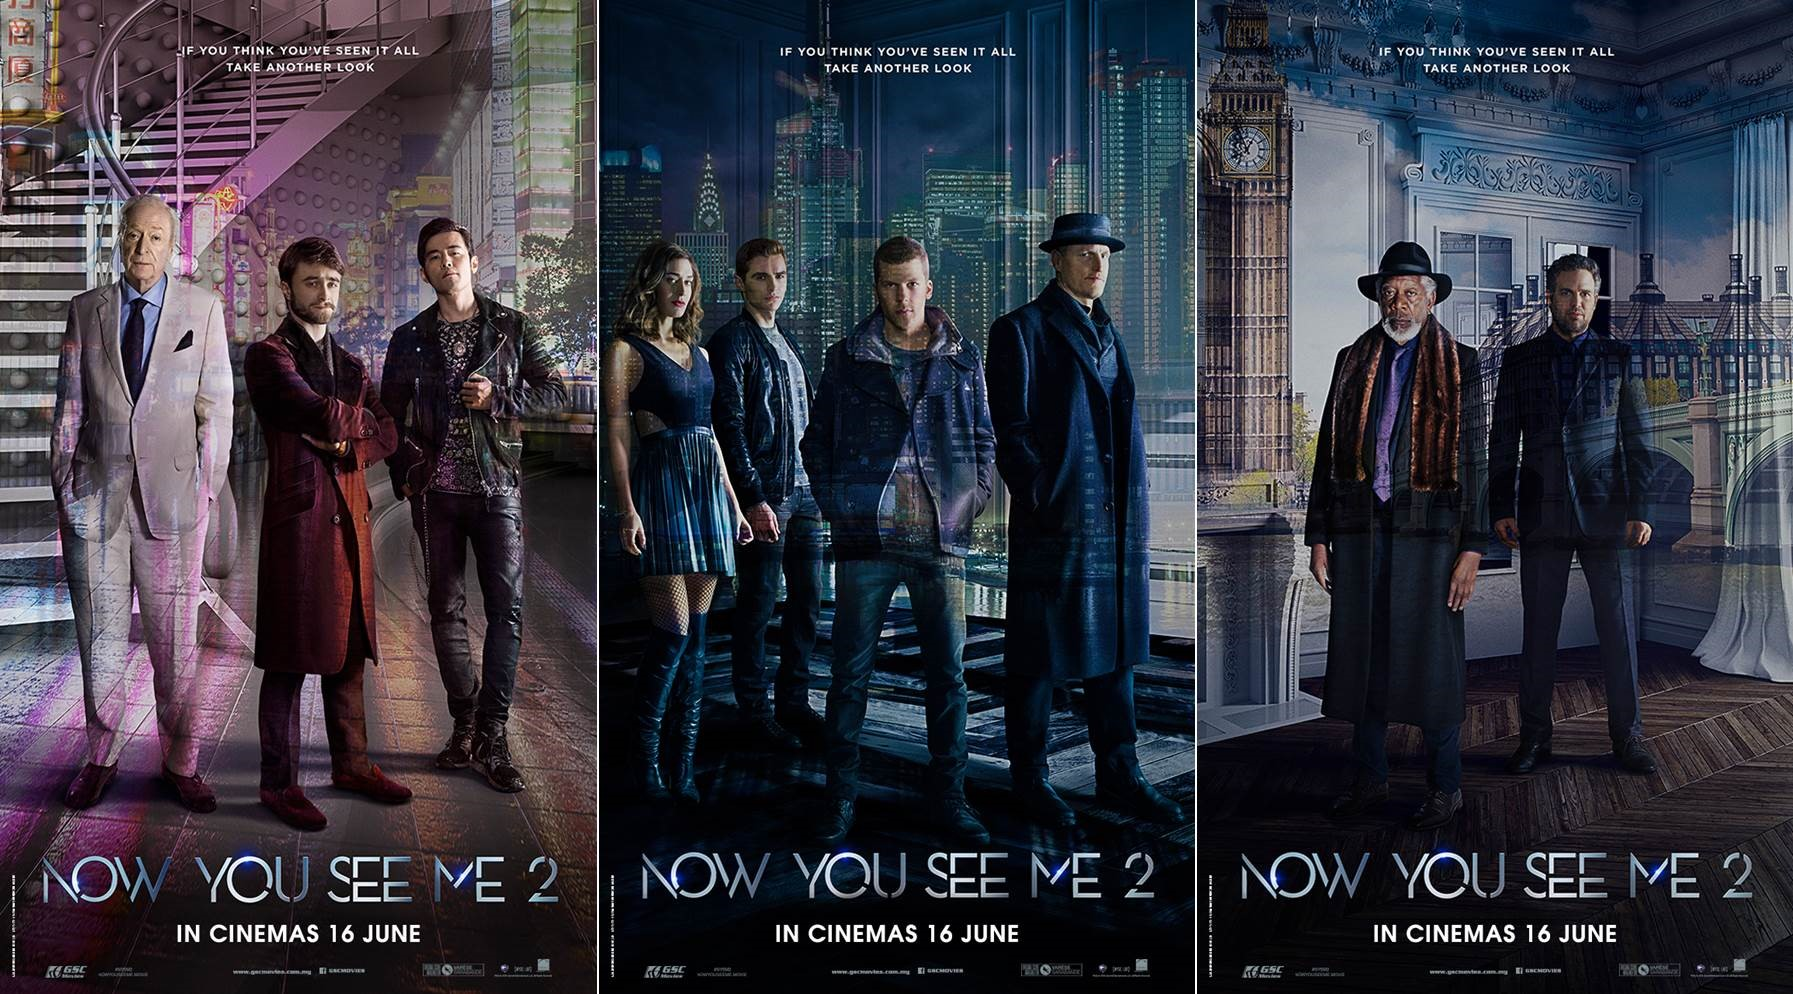 Now You See Me 2 Exciting Action Movies Gsc Movies